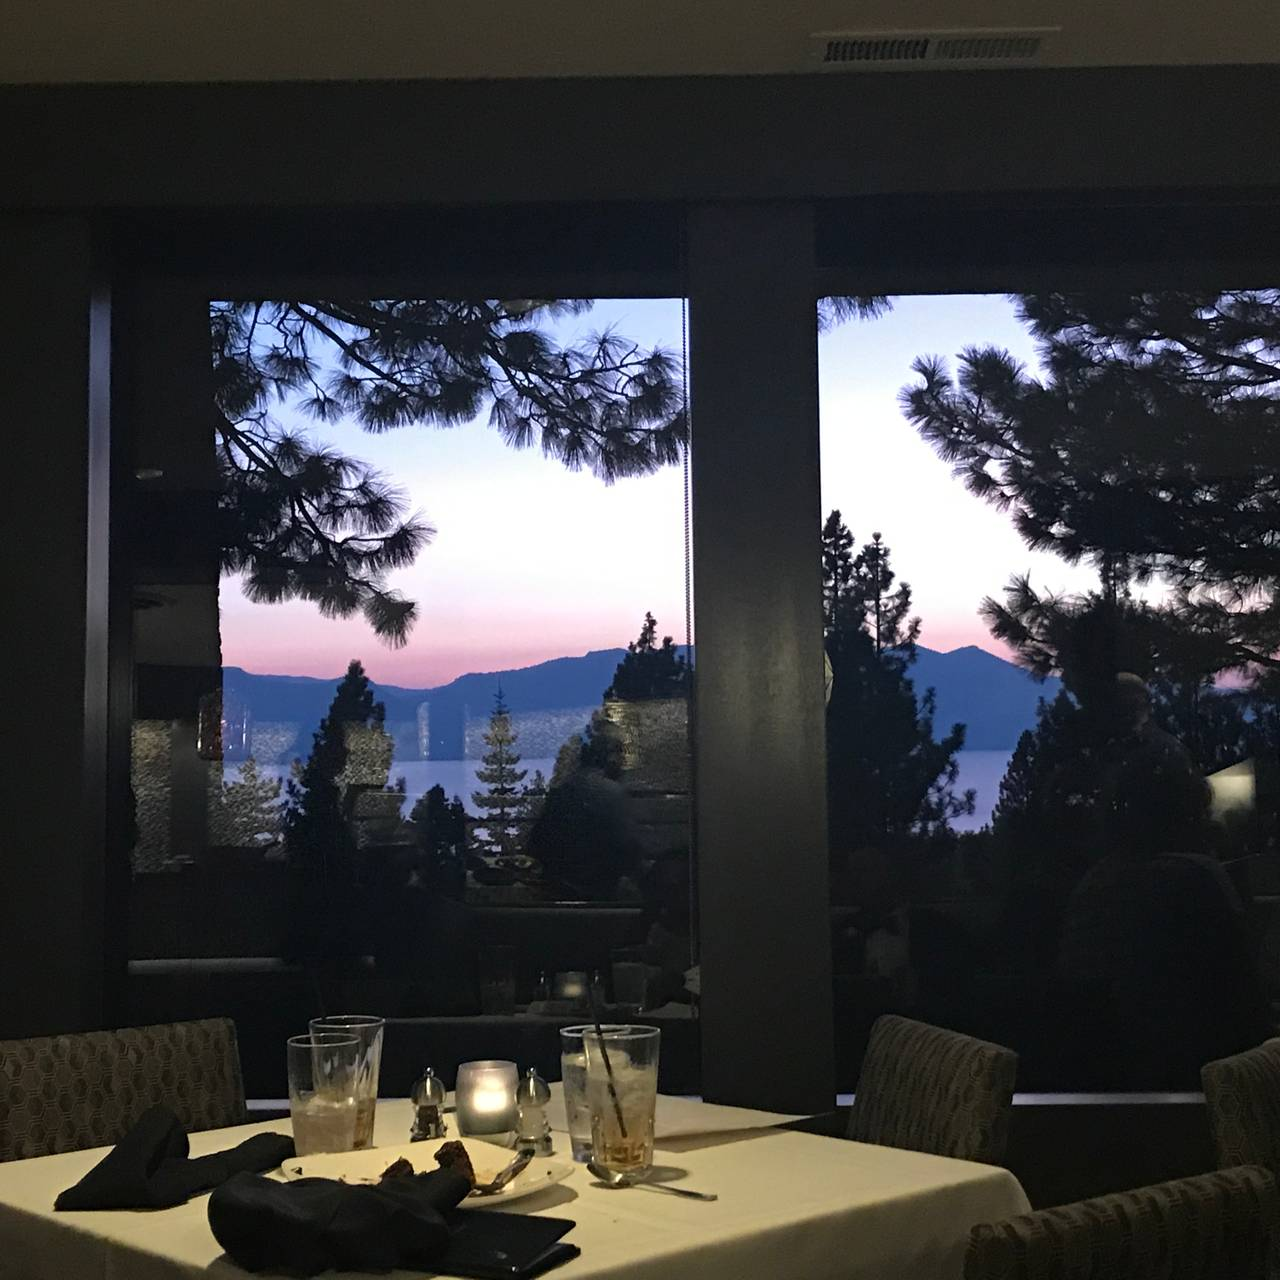 Chart house restaurant lake tahoe lake tahoe nv opentable